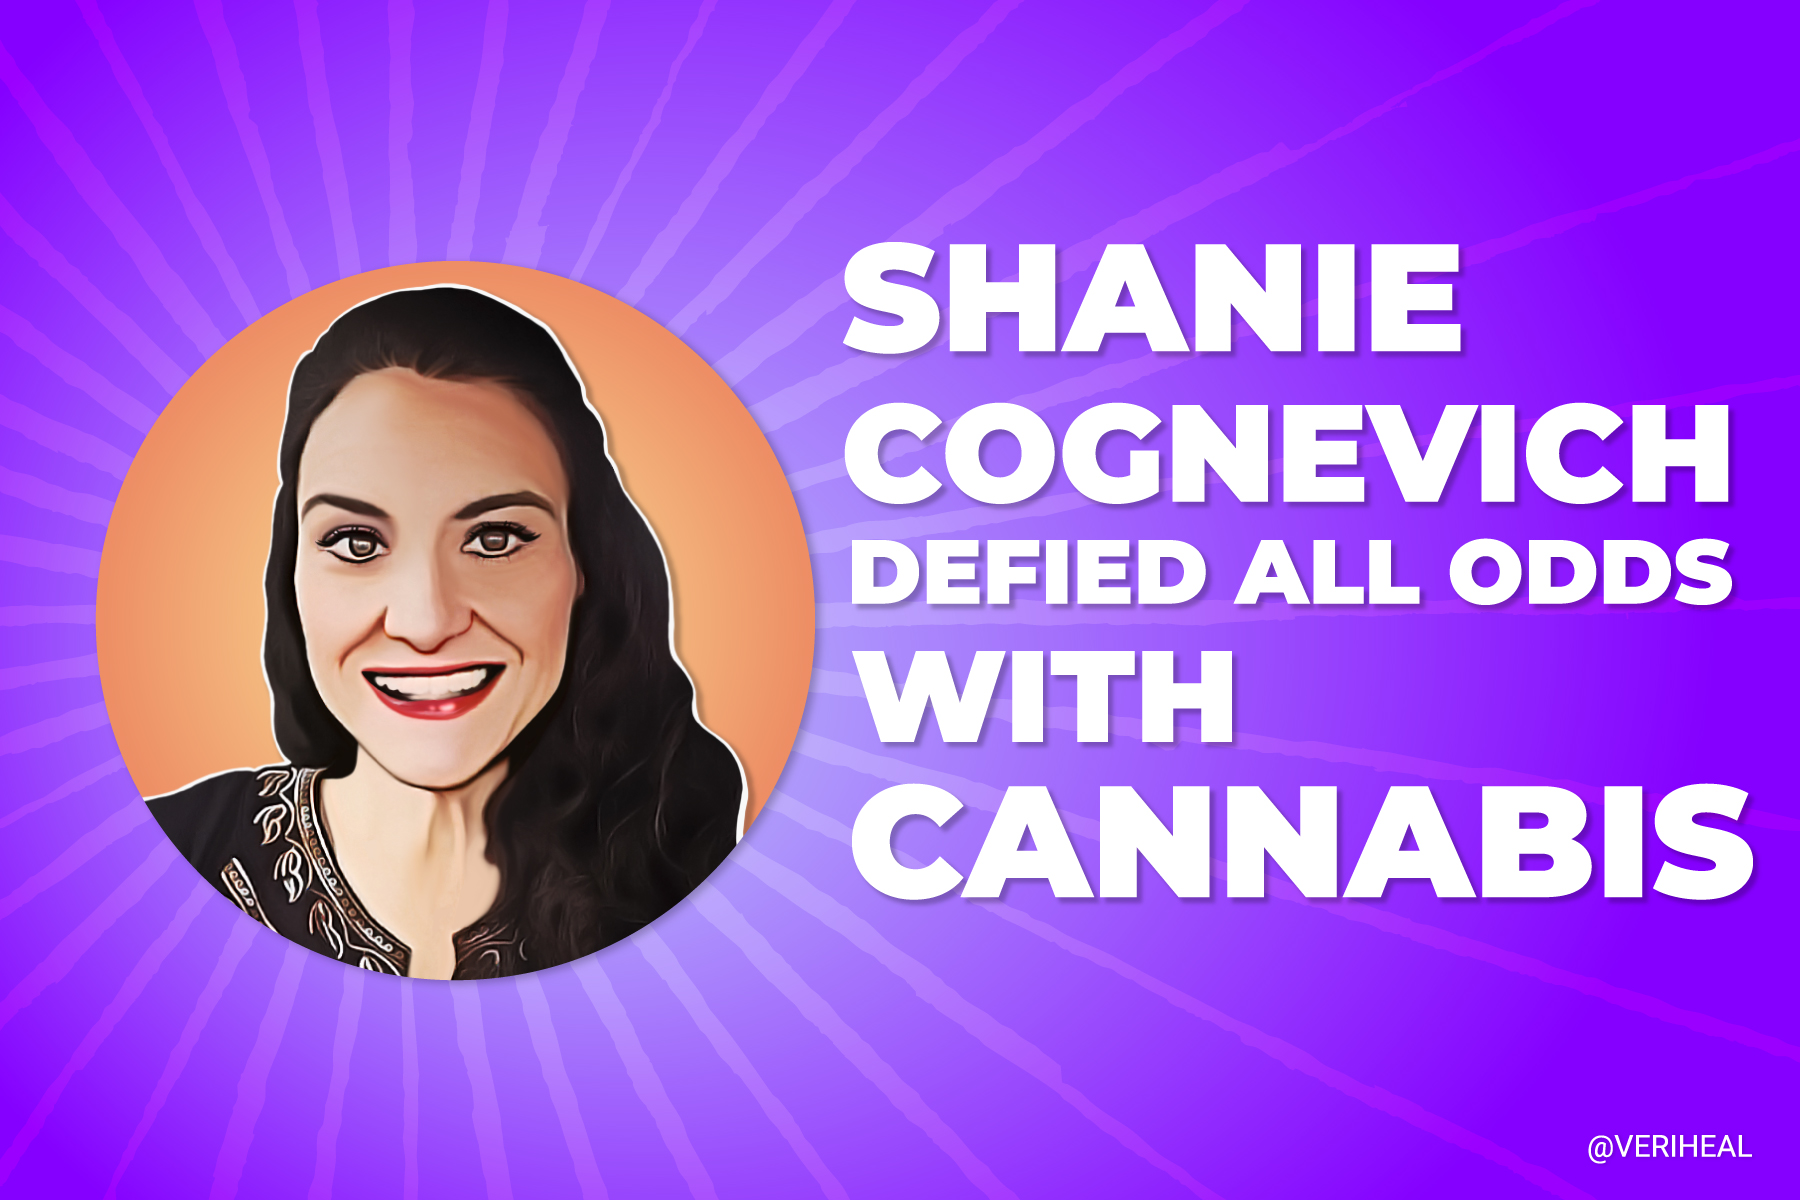 Cannabis Super Madre Shanie Cognevich Defied All Odds With Cannabis